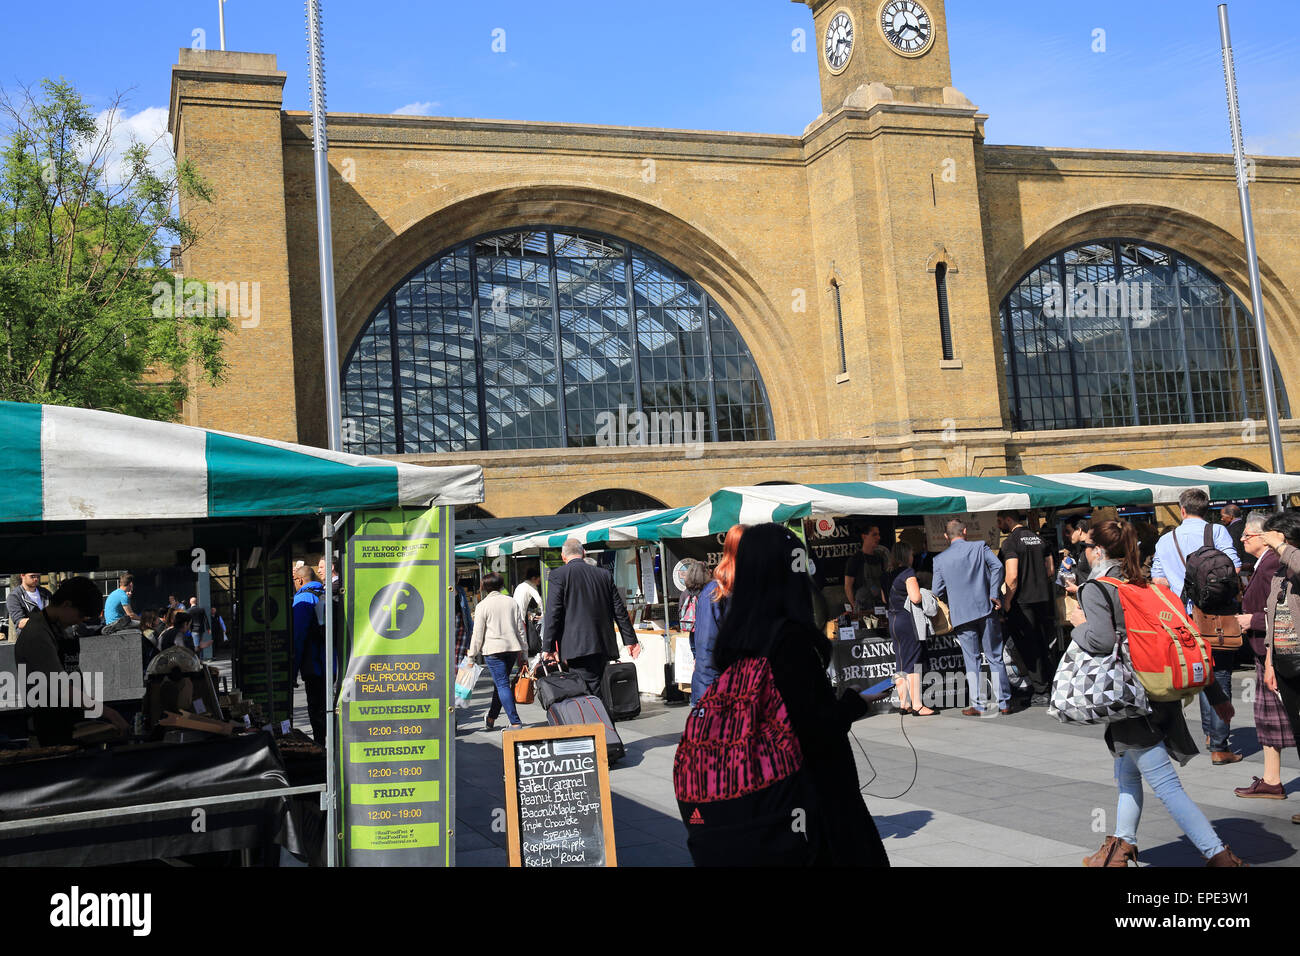 The Real Food Market on Kings Cross Square in front of the train station, on Euston Road, north London, England, - Stock Image